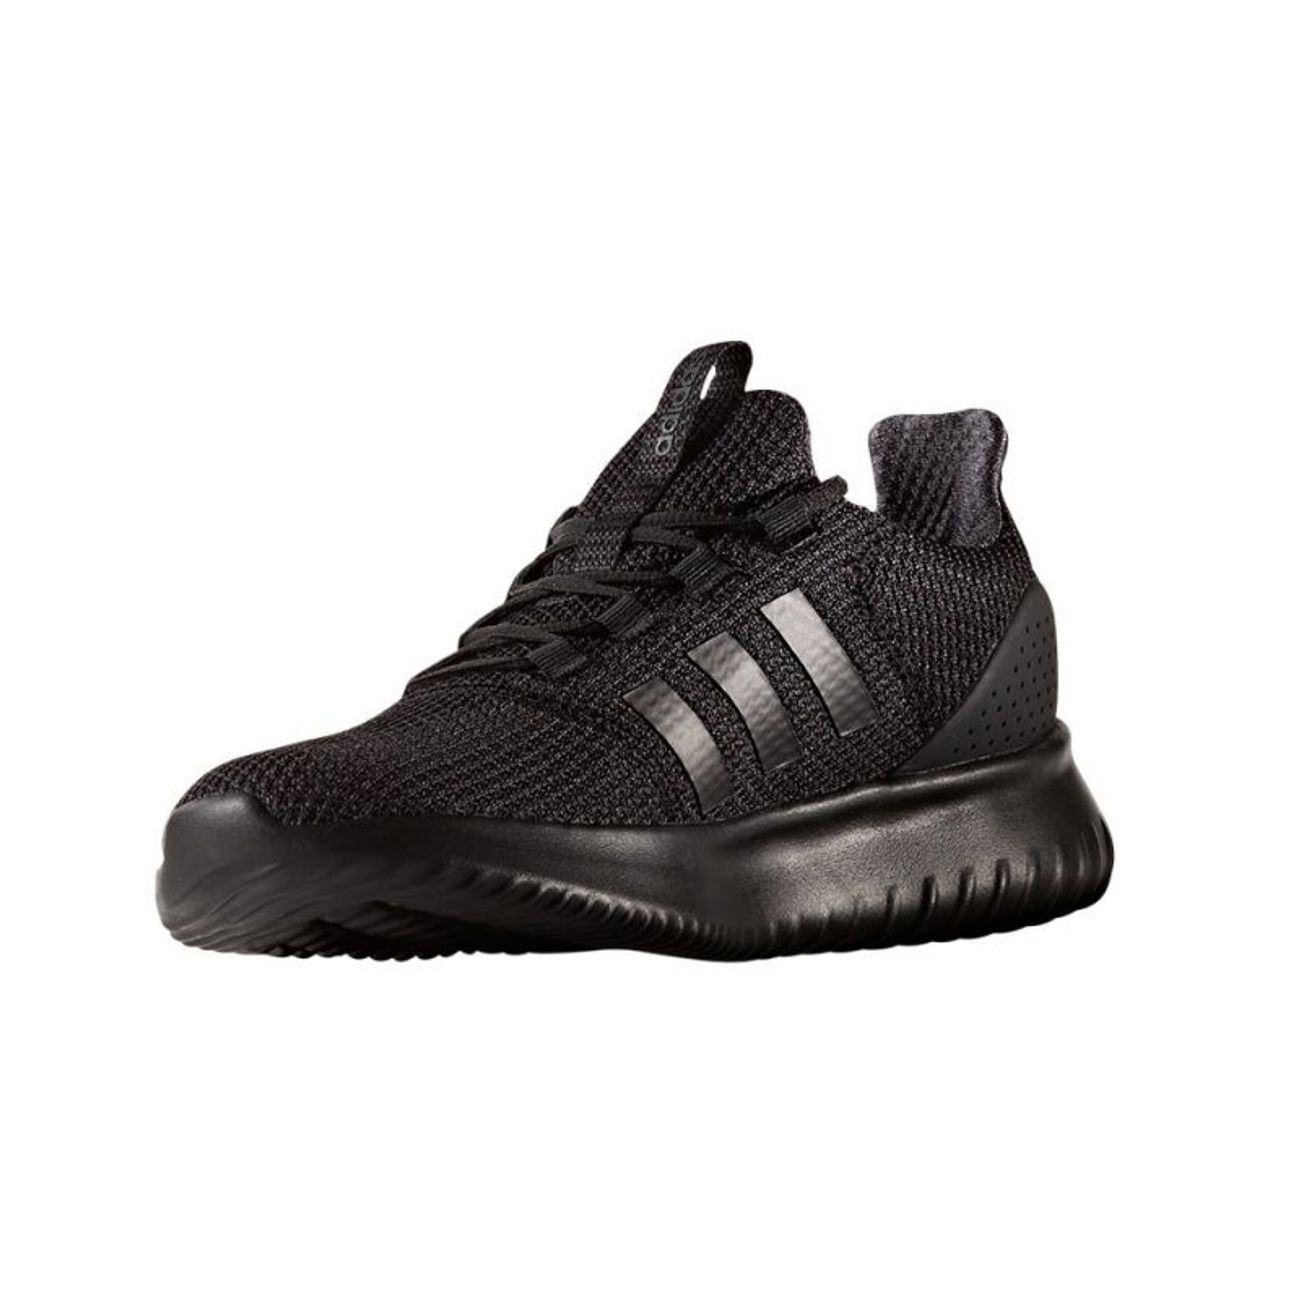 detailed look d7488 ab041 ... Mode- Lifestyle homme ADIDAS ADIDAS NEO - CHAUSSURE HOMME CLOUDFOAM  ULTIMATE ...